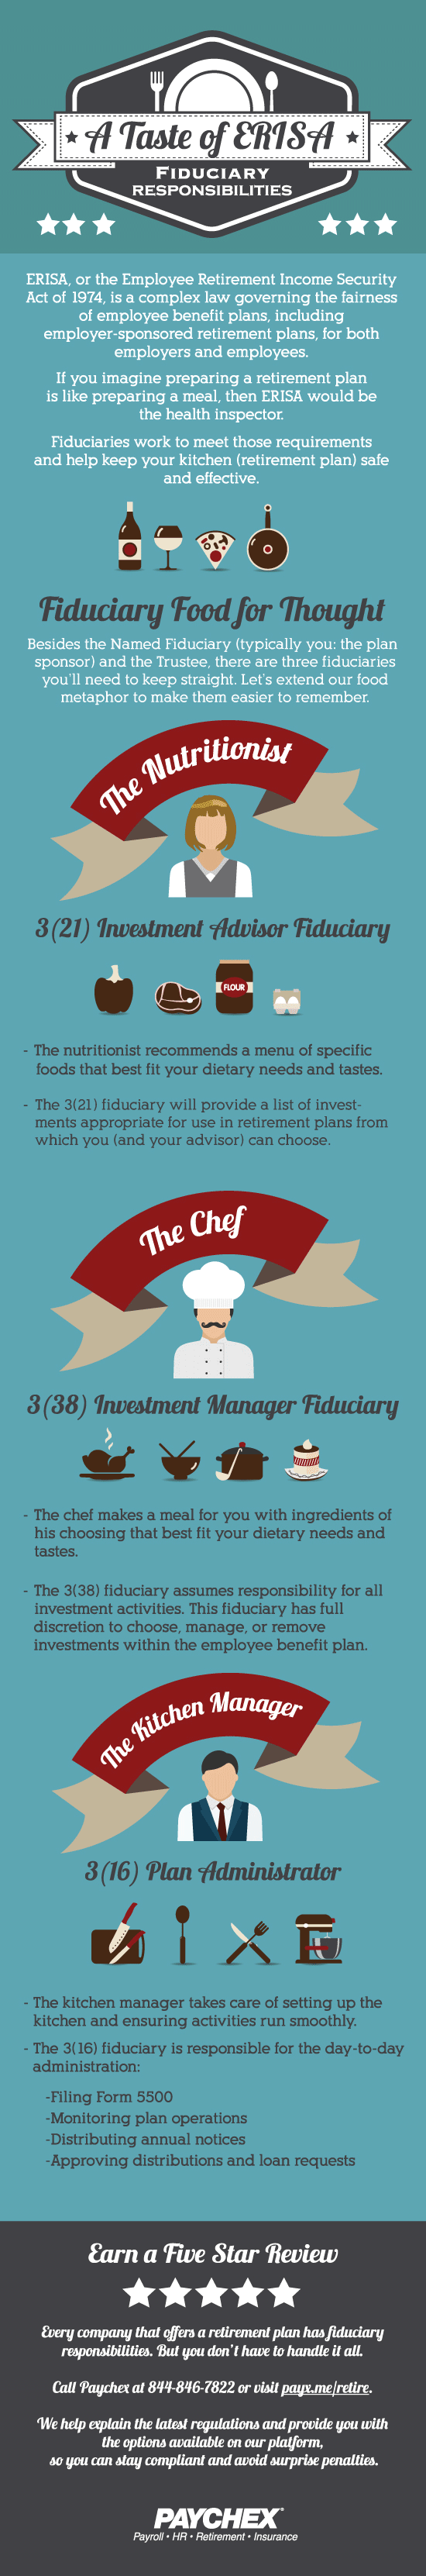 infographic differences in types of ERISA fiduciaries